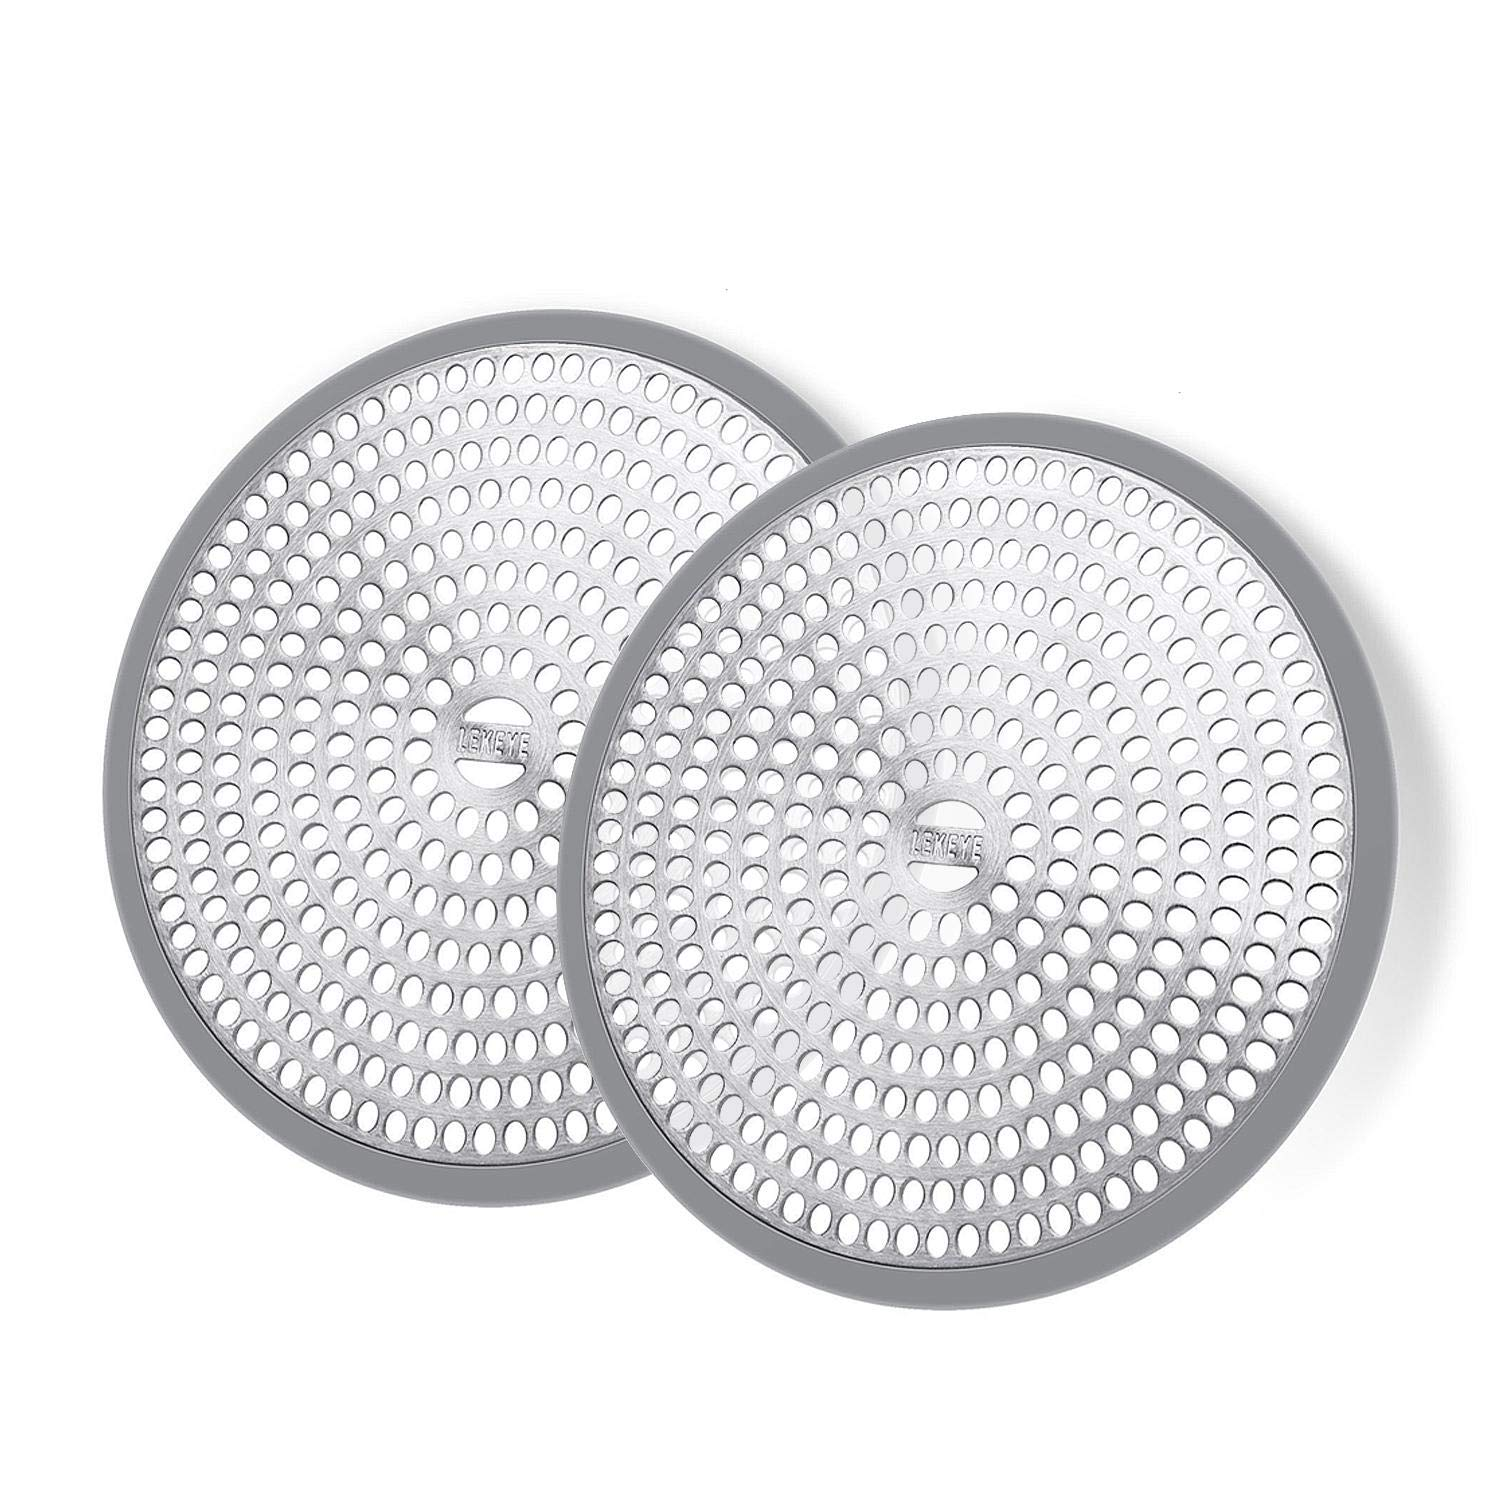 LEKEYE Shower Hair Catcher Drain Protector Strainer-Steel & Silicone 2 Pack... by LEKEYE